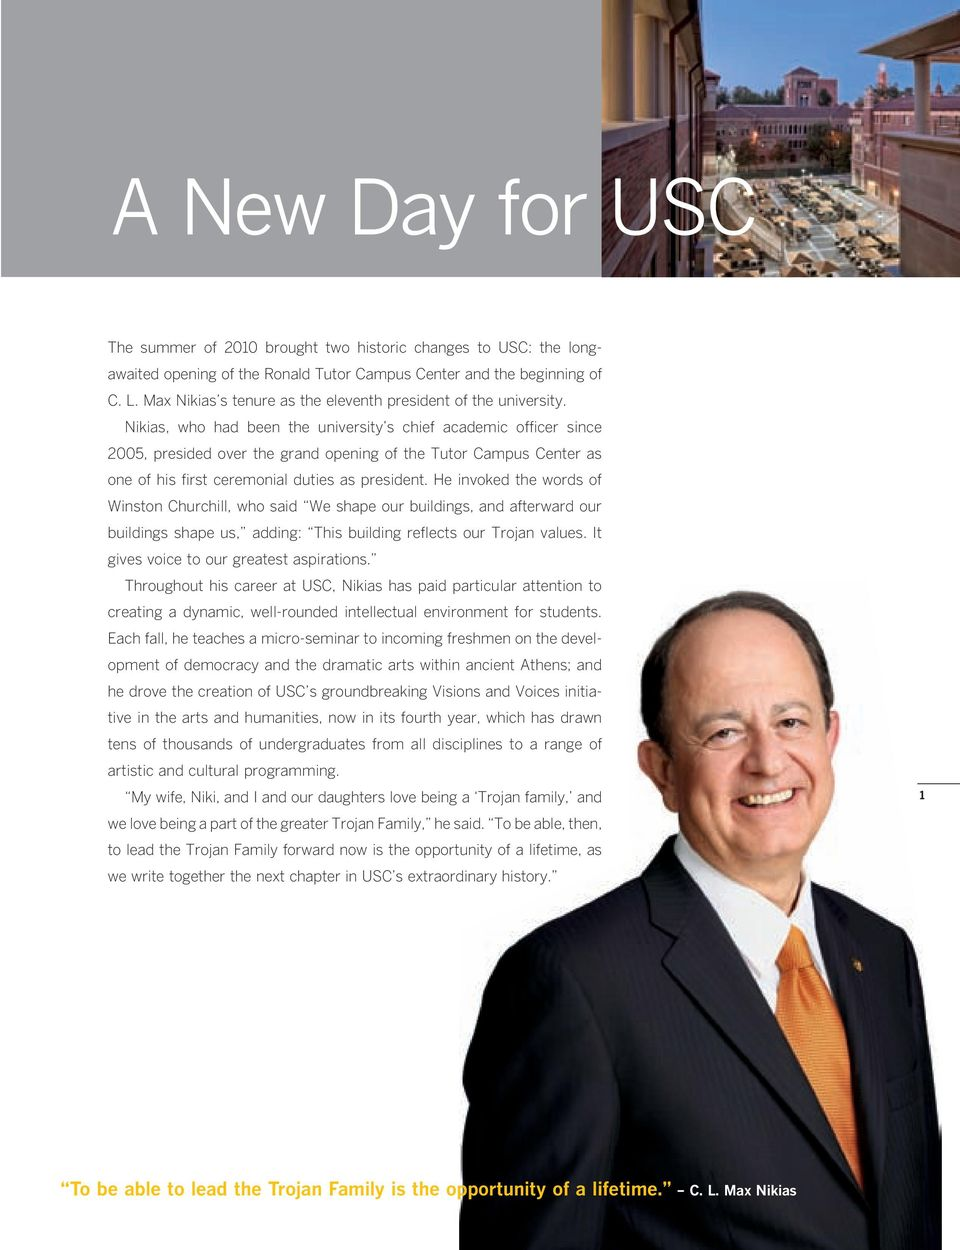 Nikias, who had been the university s chief academic officer since 2005, presided over the grand opening of the Tutor Campus Center as one of his first ceremonial duties as president.